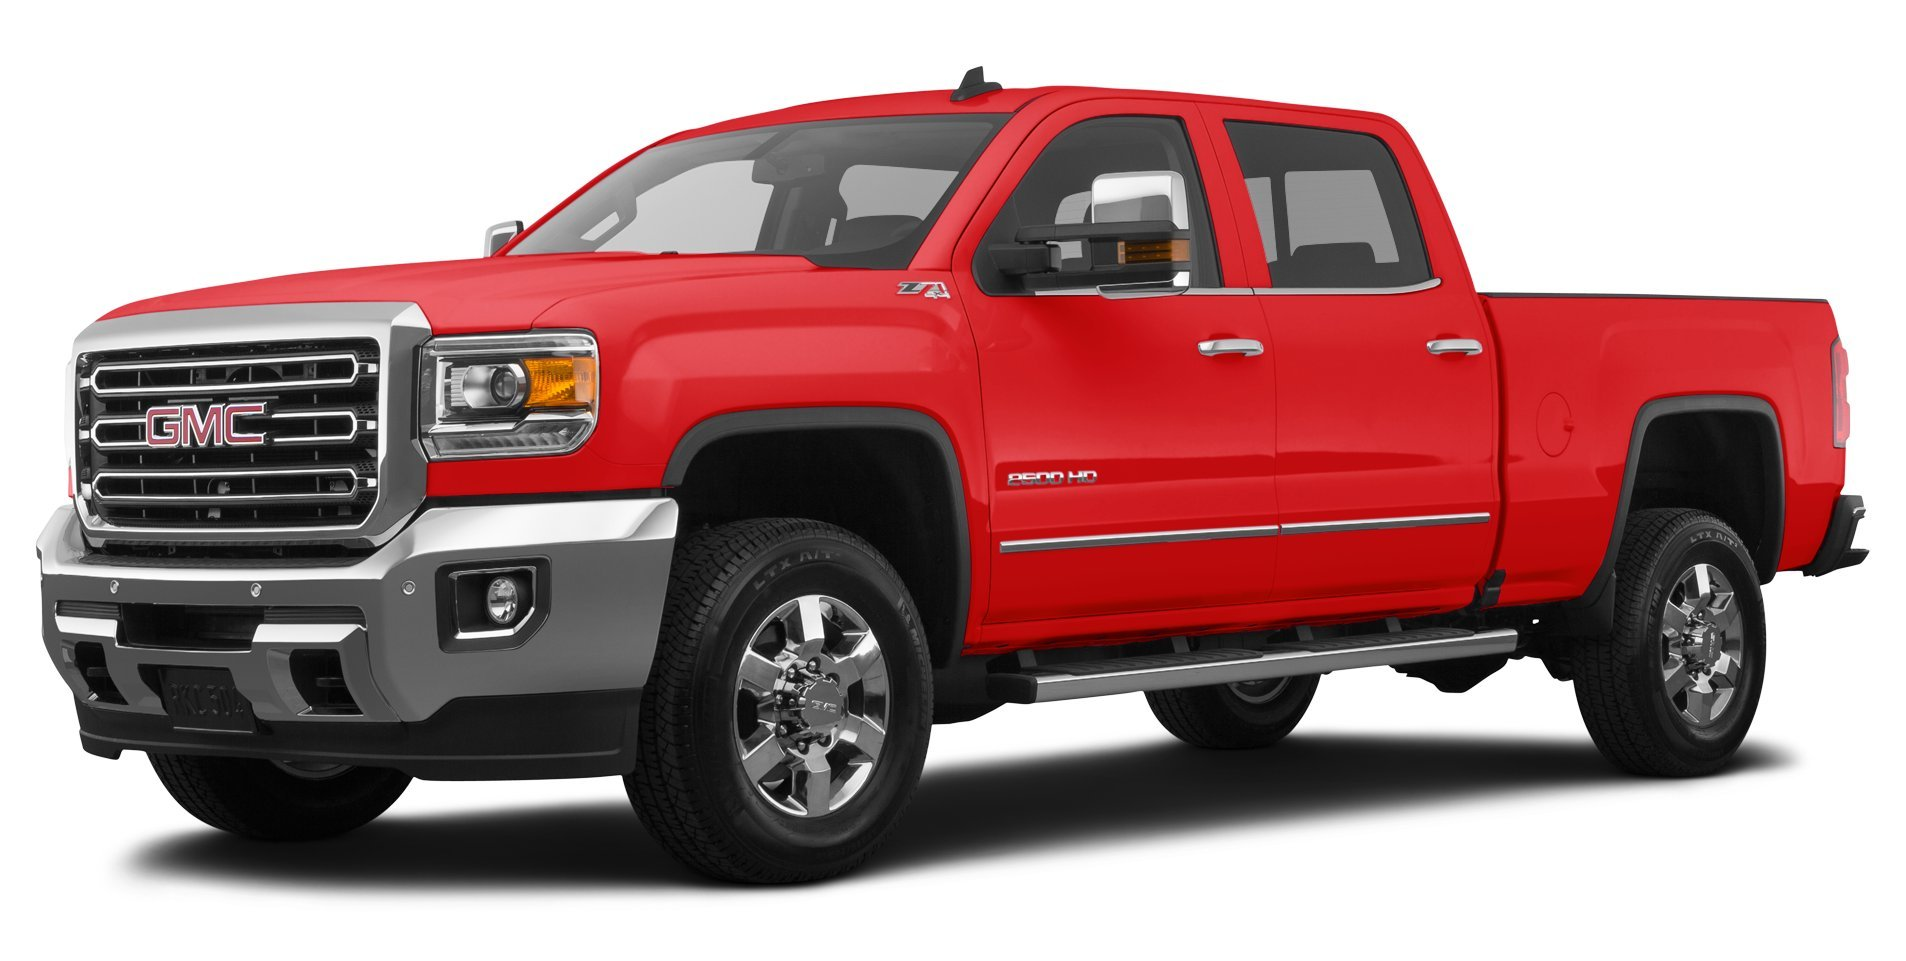 2017 gmc sierra 2500 hd reviews images and specs vehicles. Black Bedroom Furniture Sets. Home Design Ideas